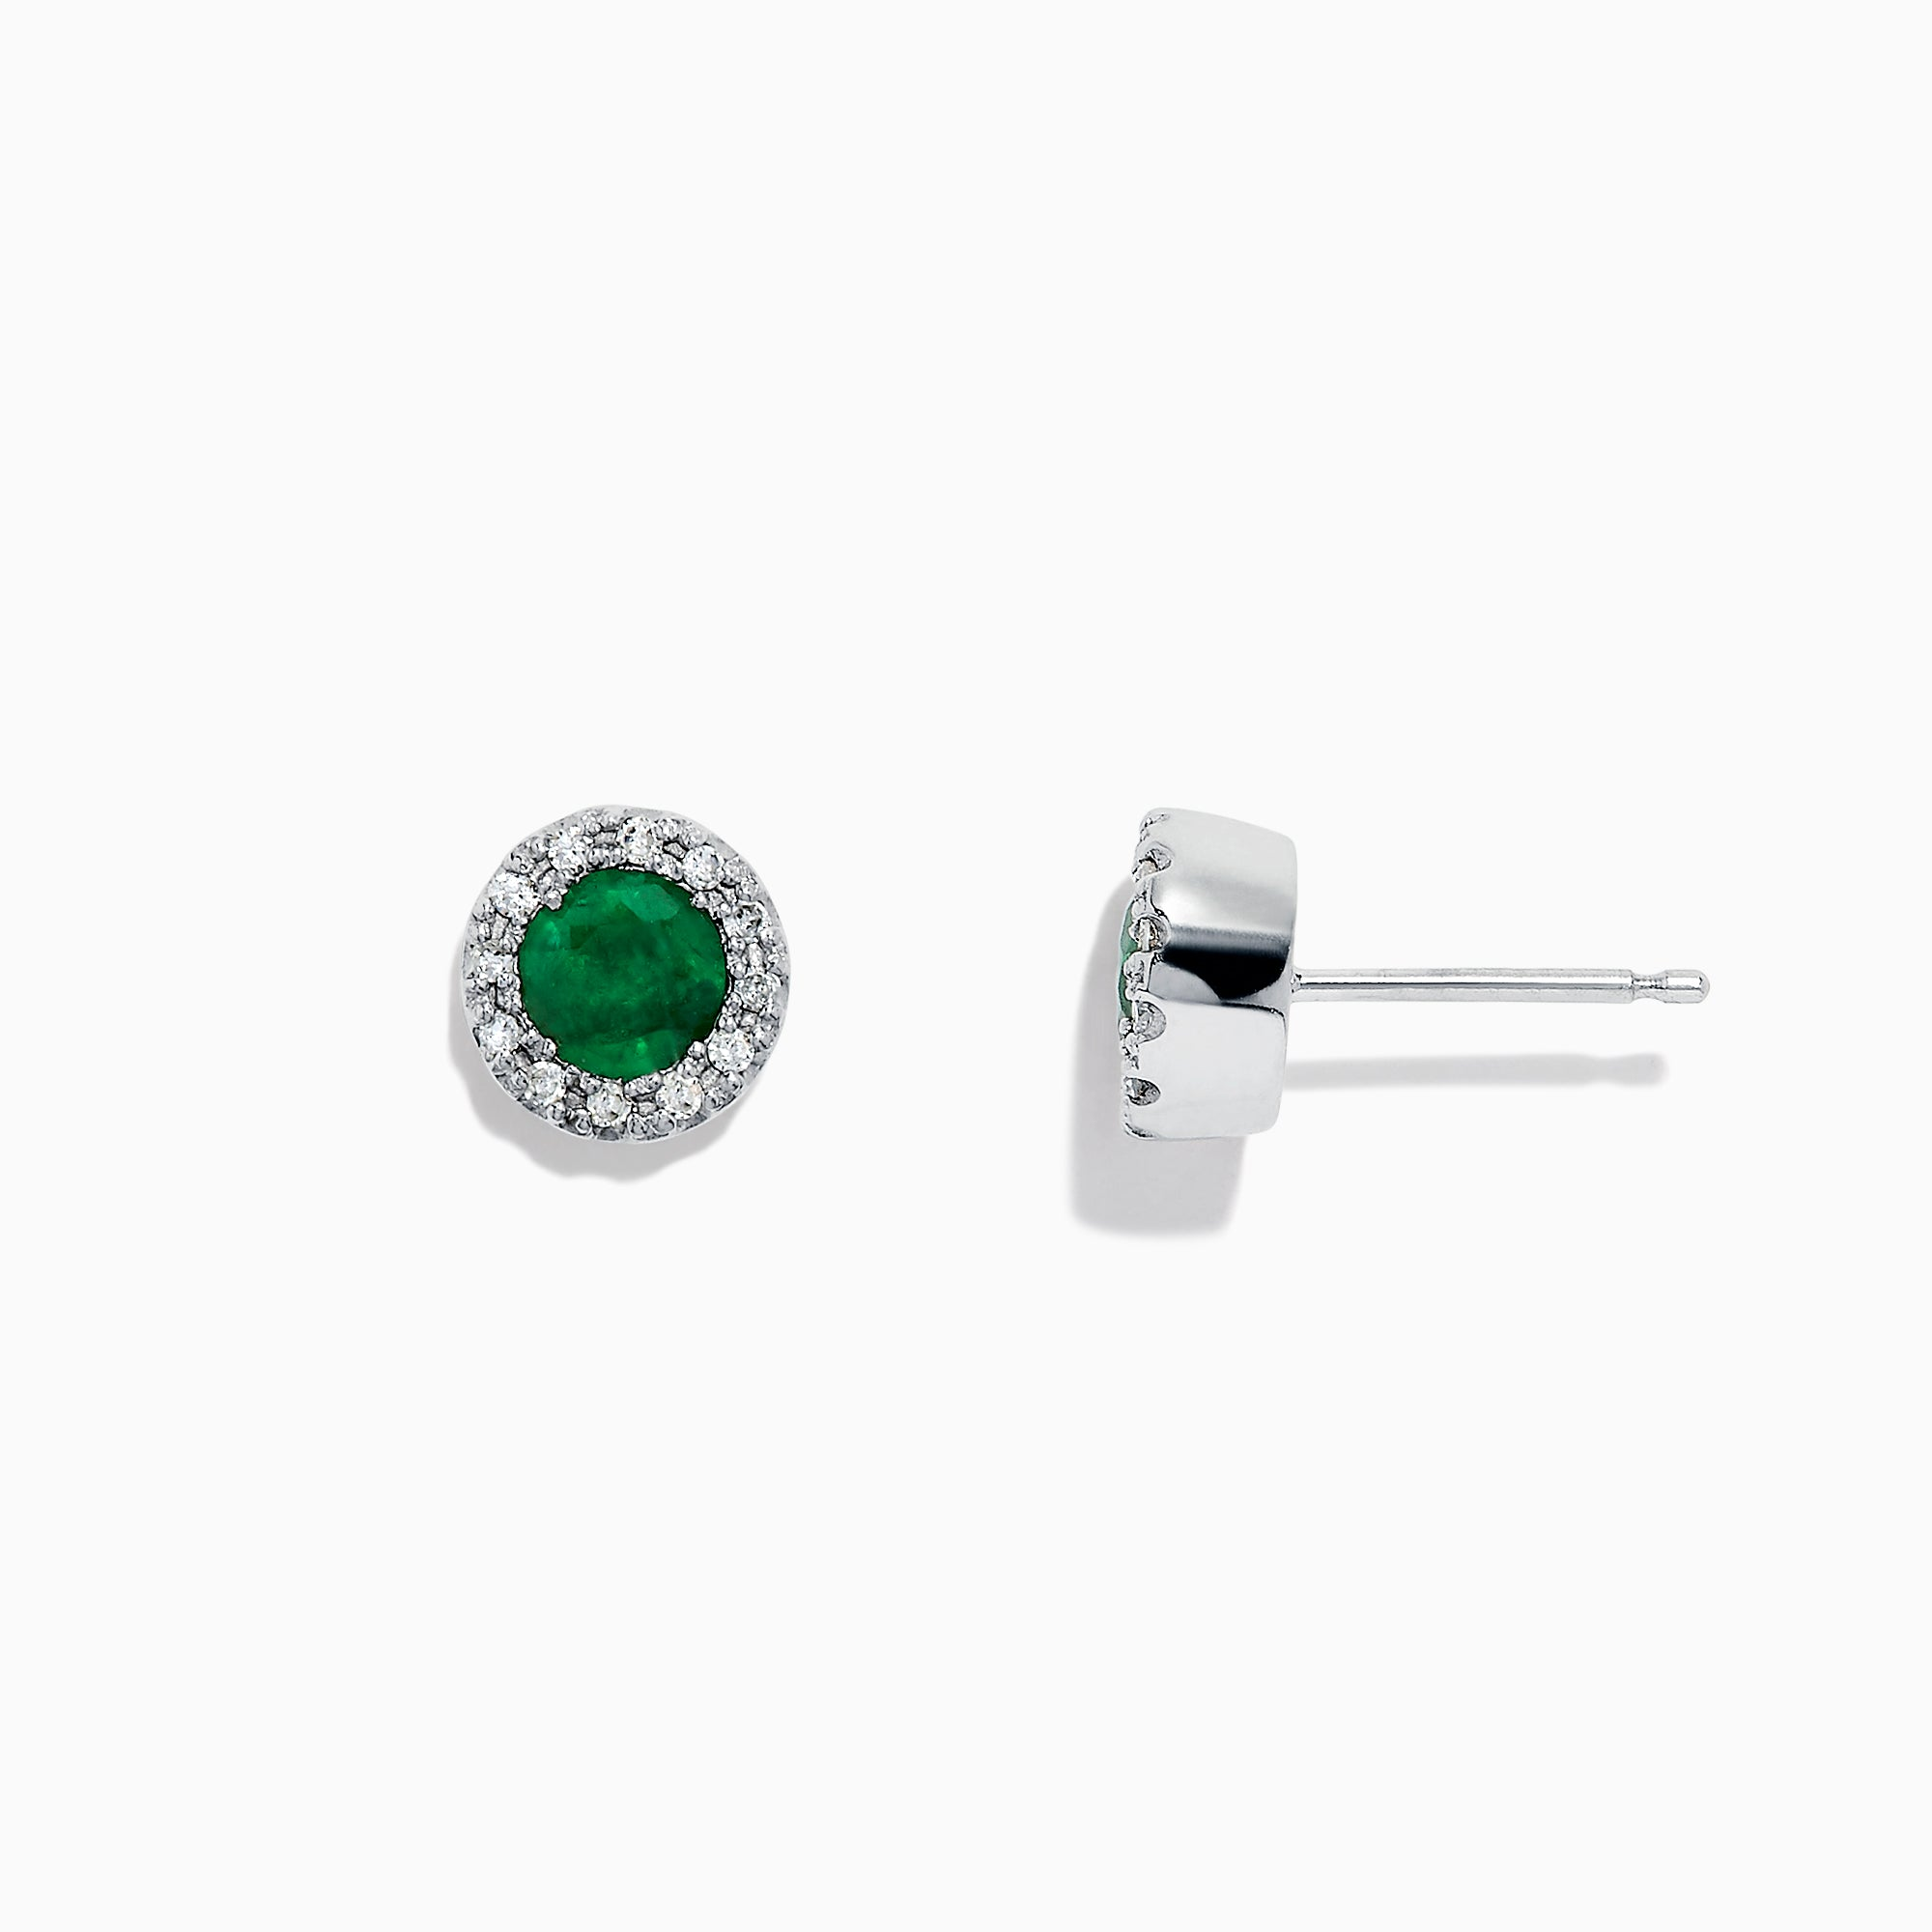 Effy Brasilica 14K White Gold Emerald and Diamond Stud Earrings, 0.82 TCW